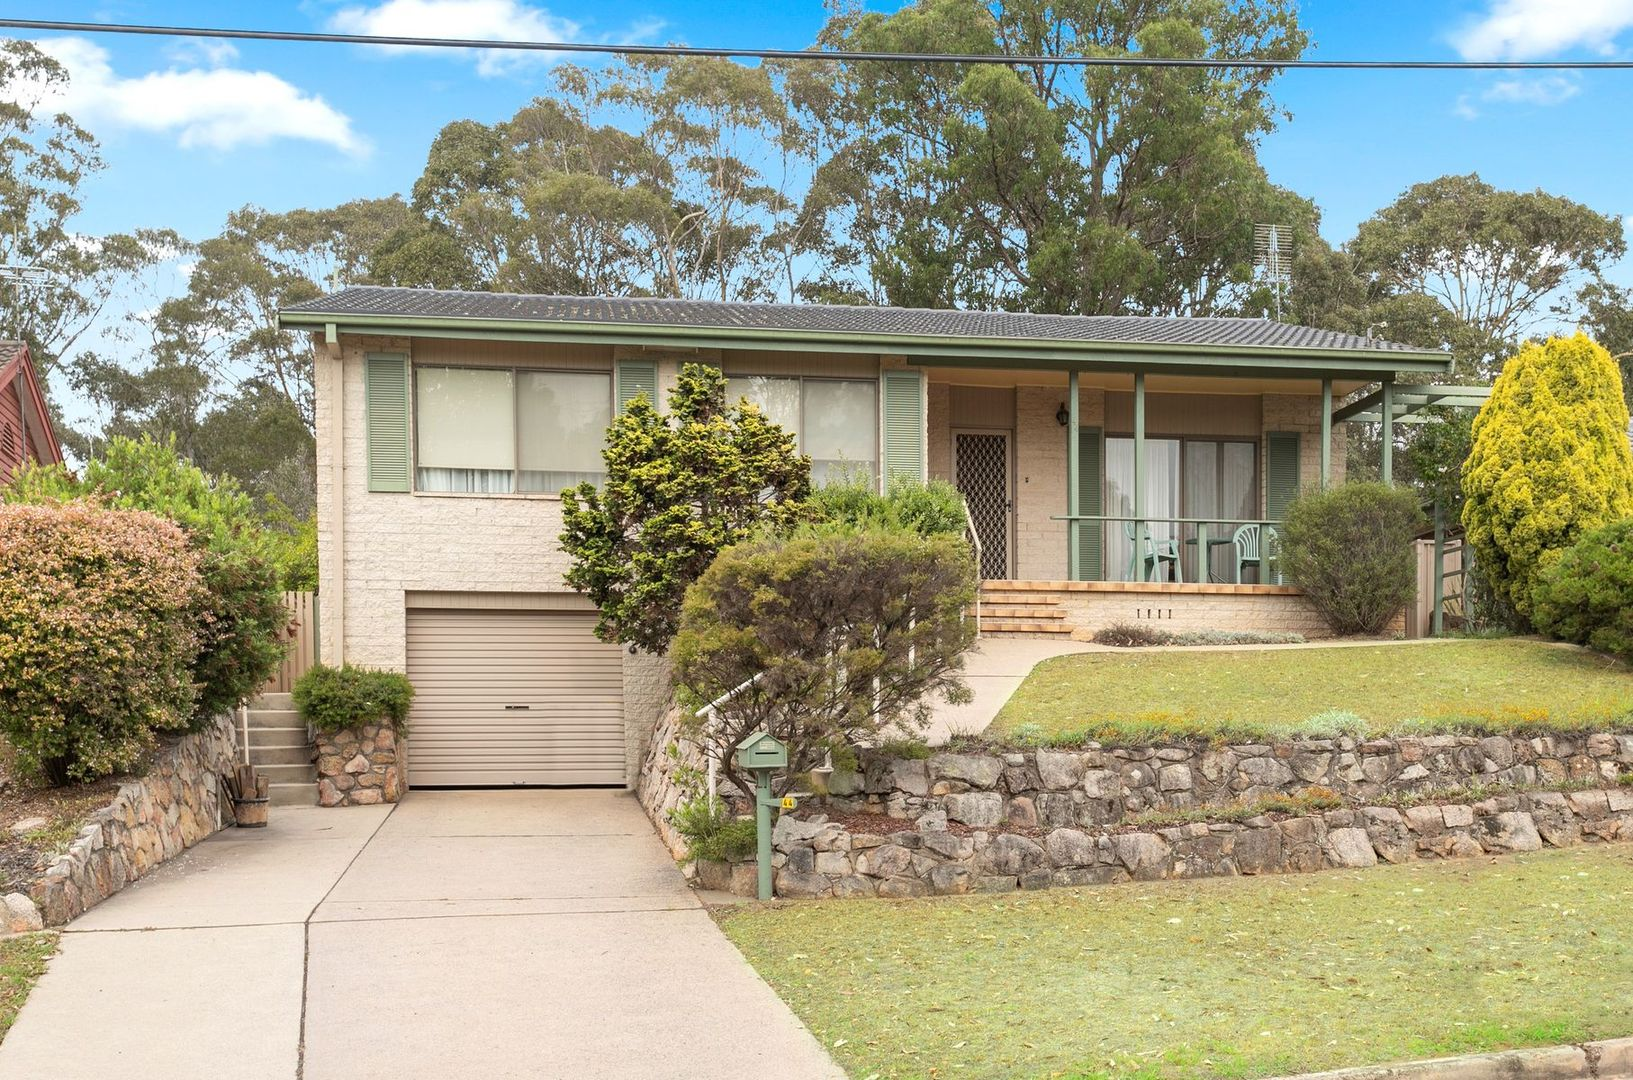 44 Calga Crescent, Catalina NSW 2536, Image 0